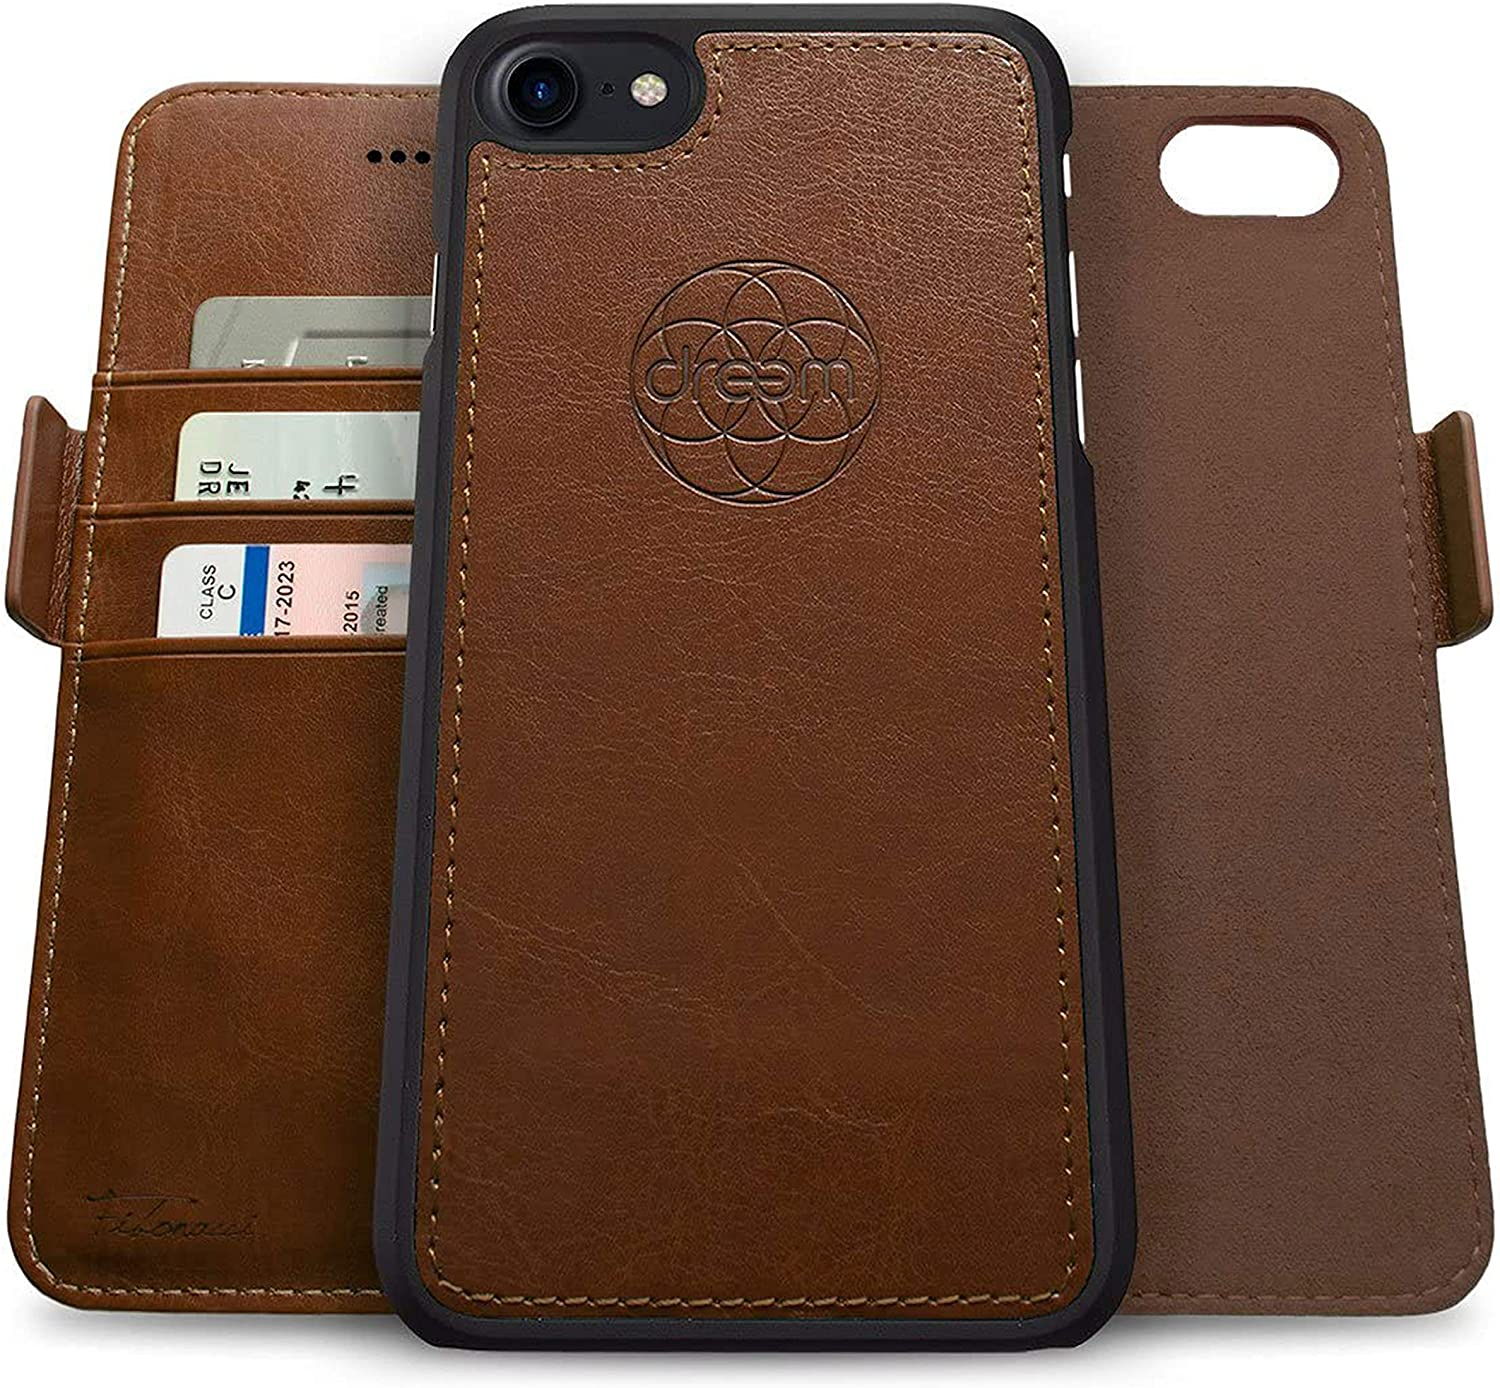 Dreem Fibonacci 2-in-1 Wallet-Case for Apple iPhone SE 2020 & 8/7 - Luxury Vegan Leather, Magnetic Detachable Shockproof Phone Case, RFID Card Protection, 2-Way Flip Stand - Chocolate